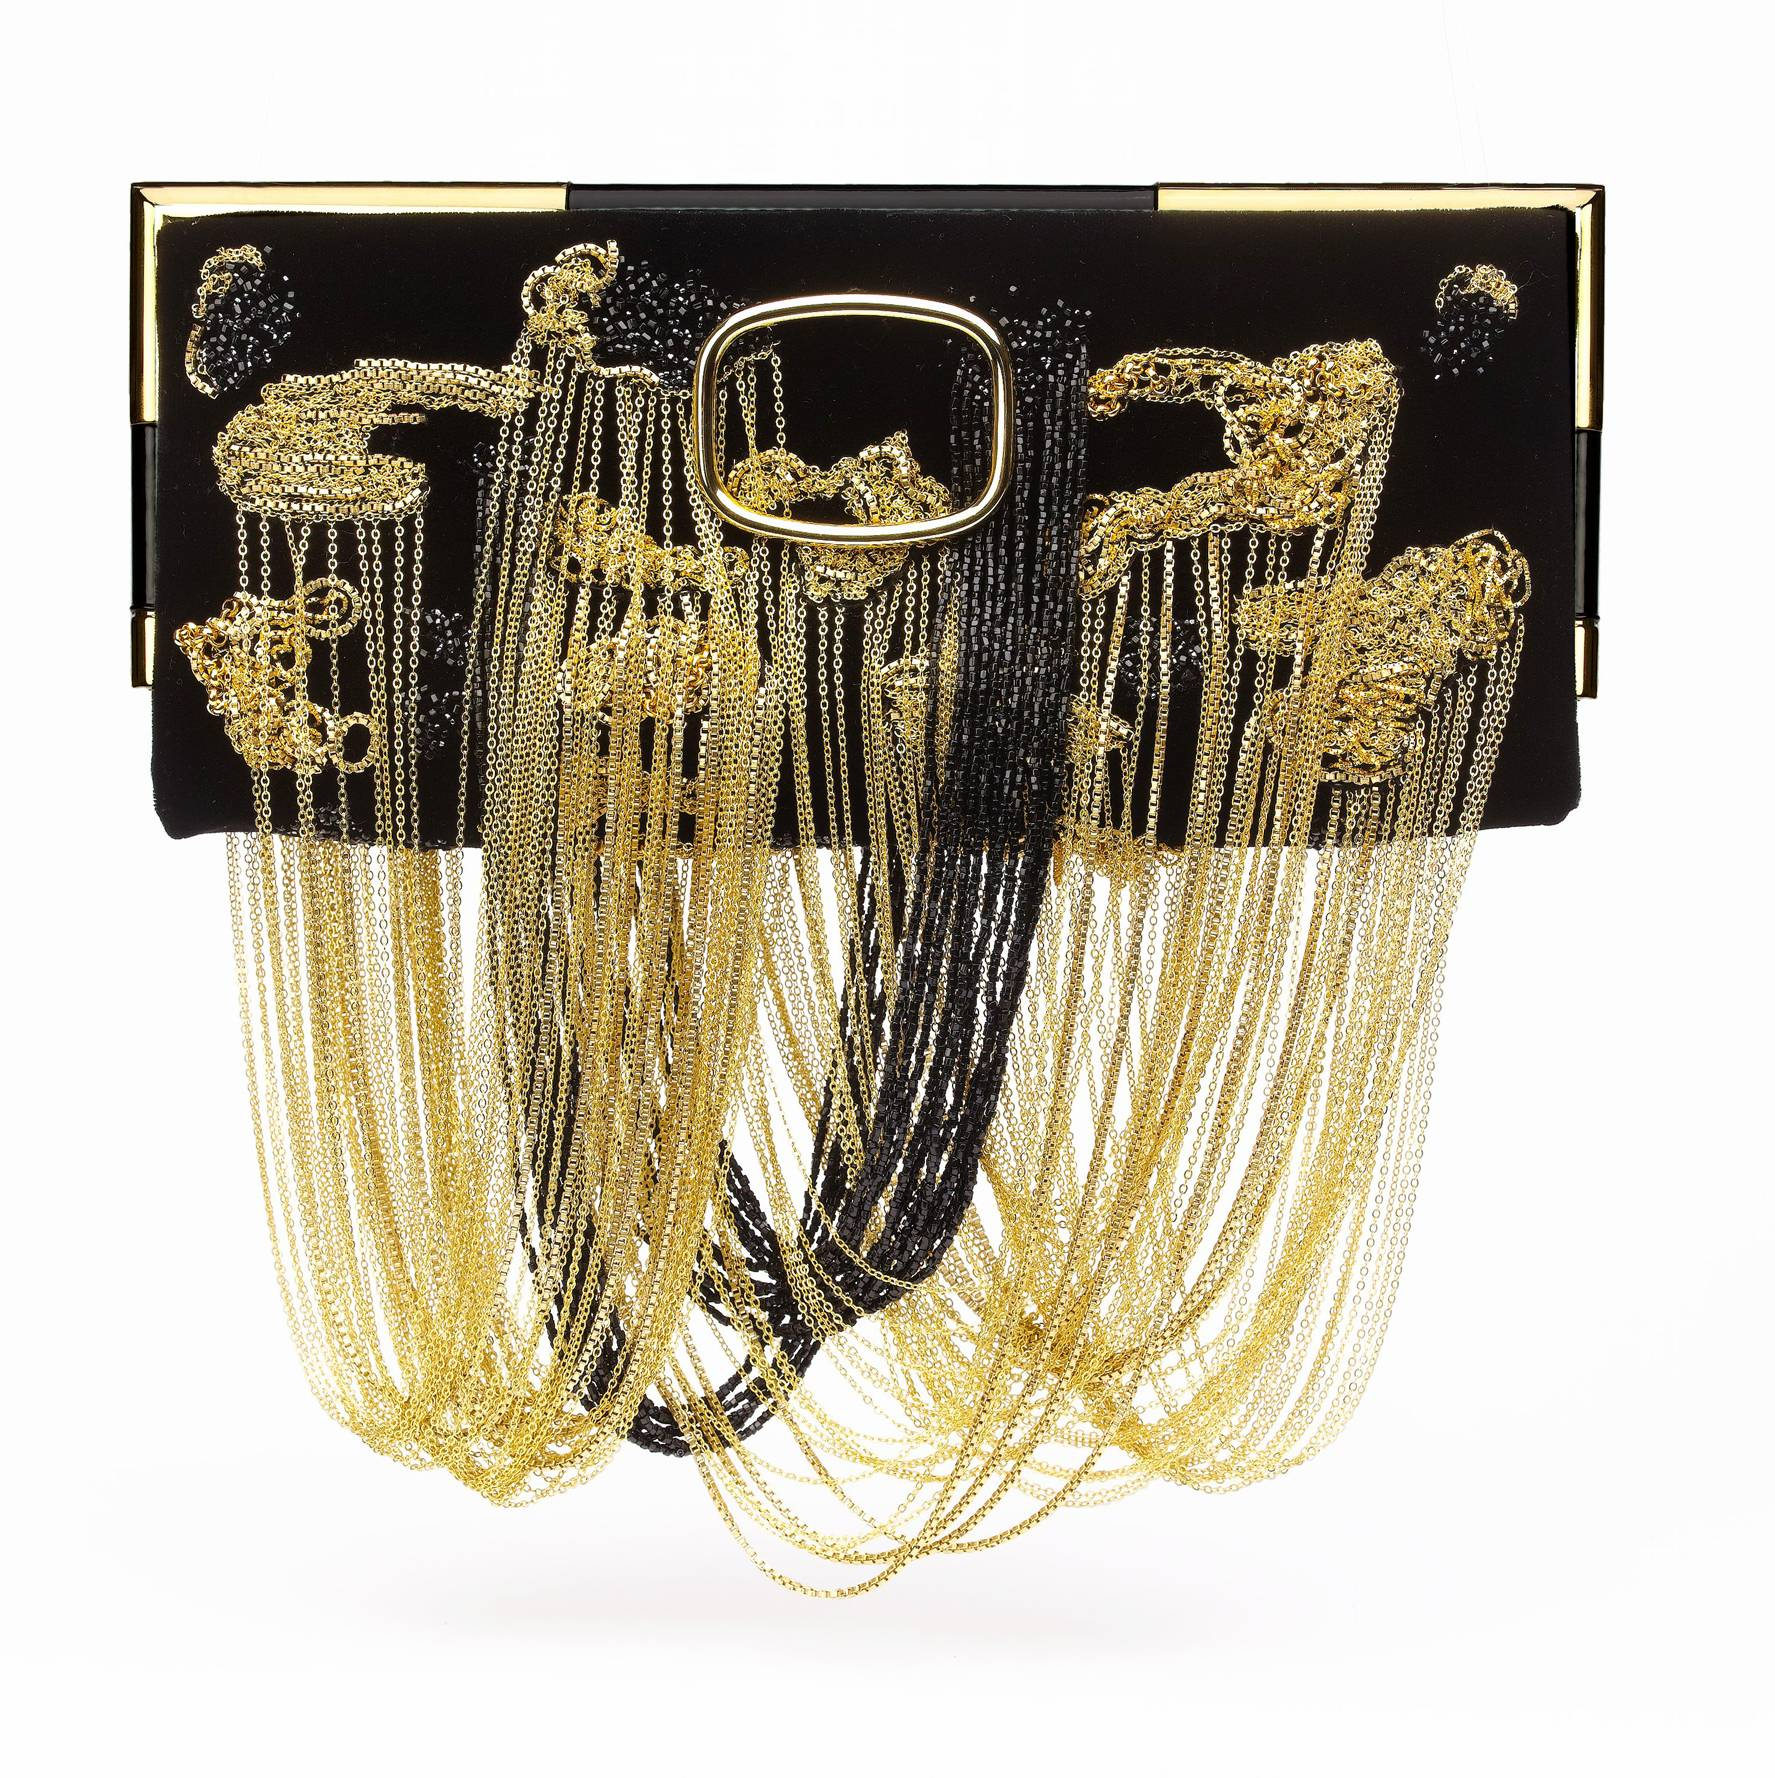 Miss Viv Chain Panther clutch